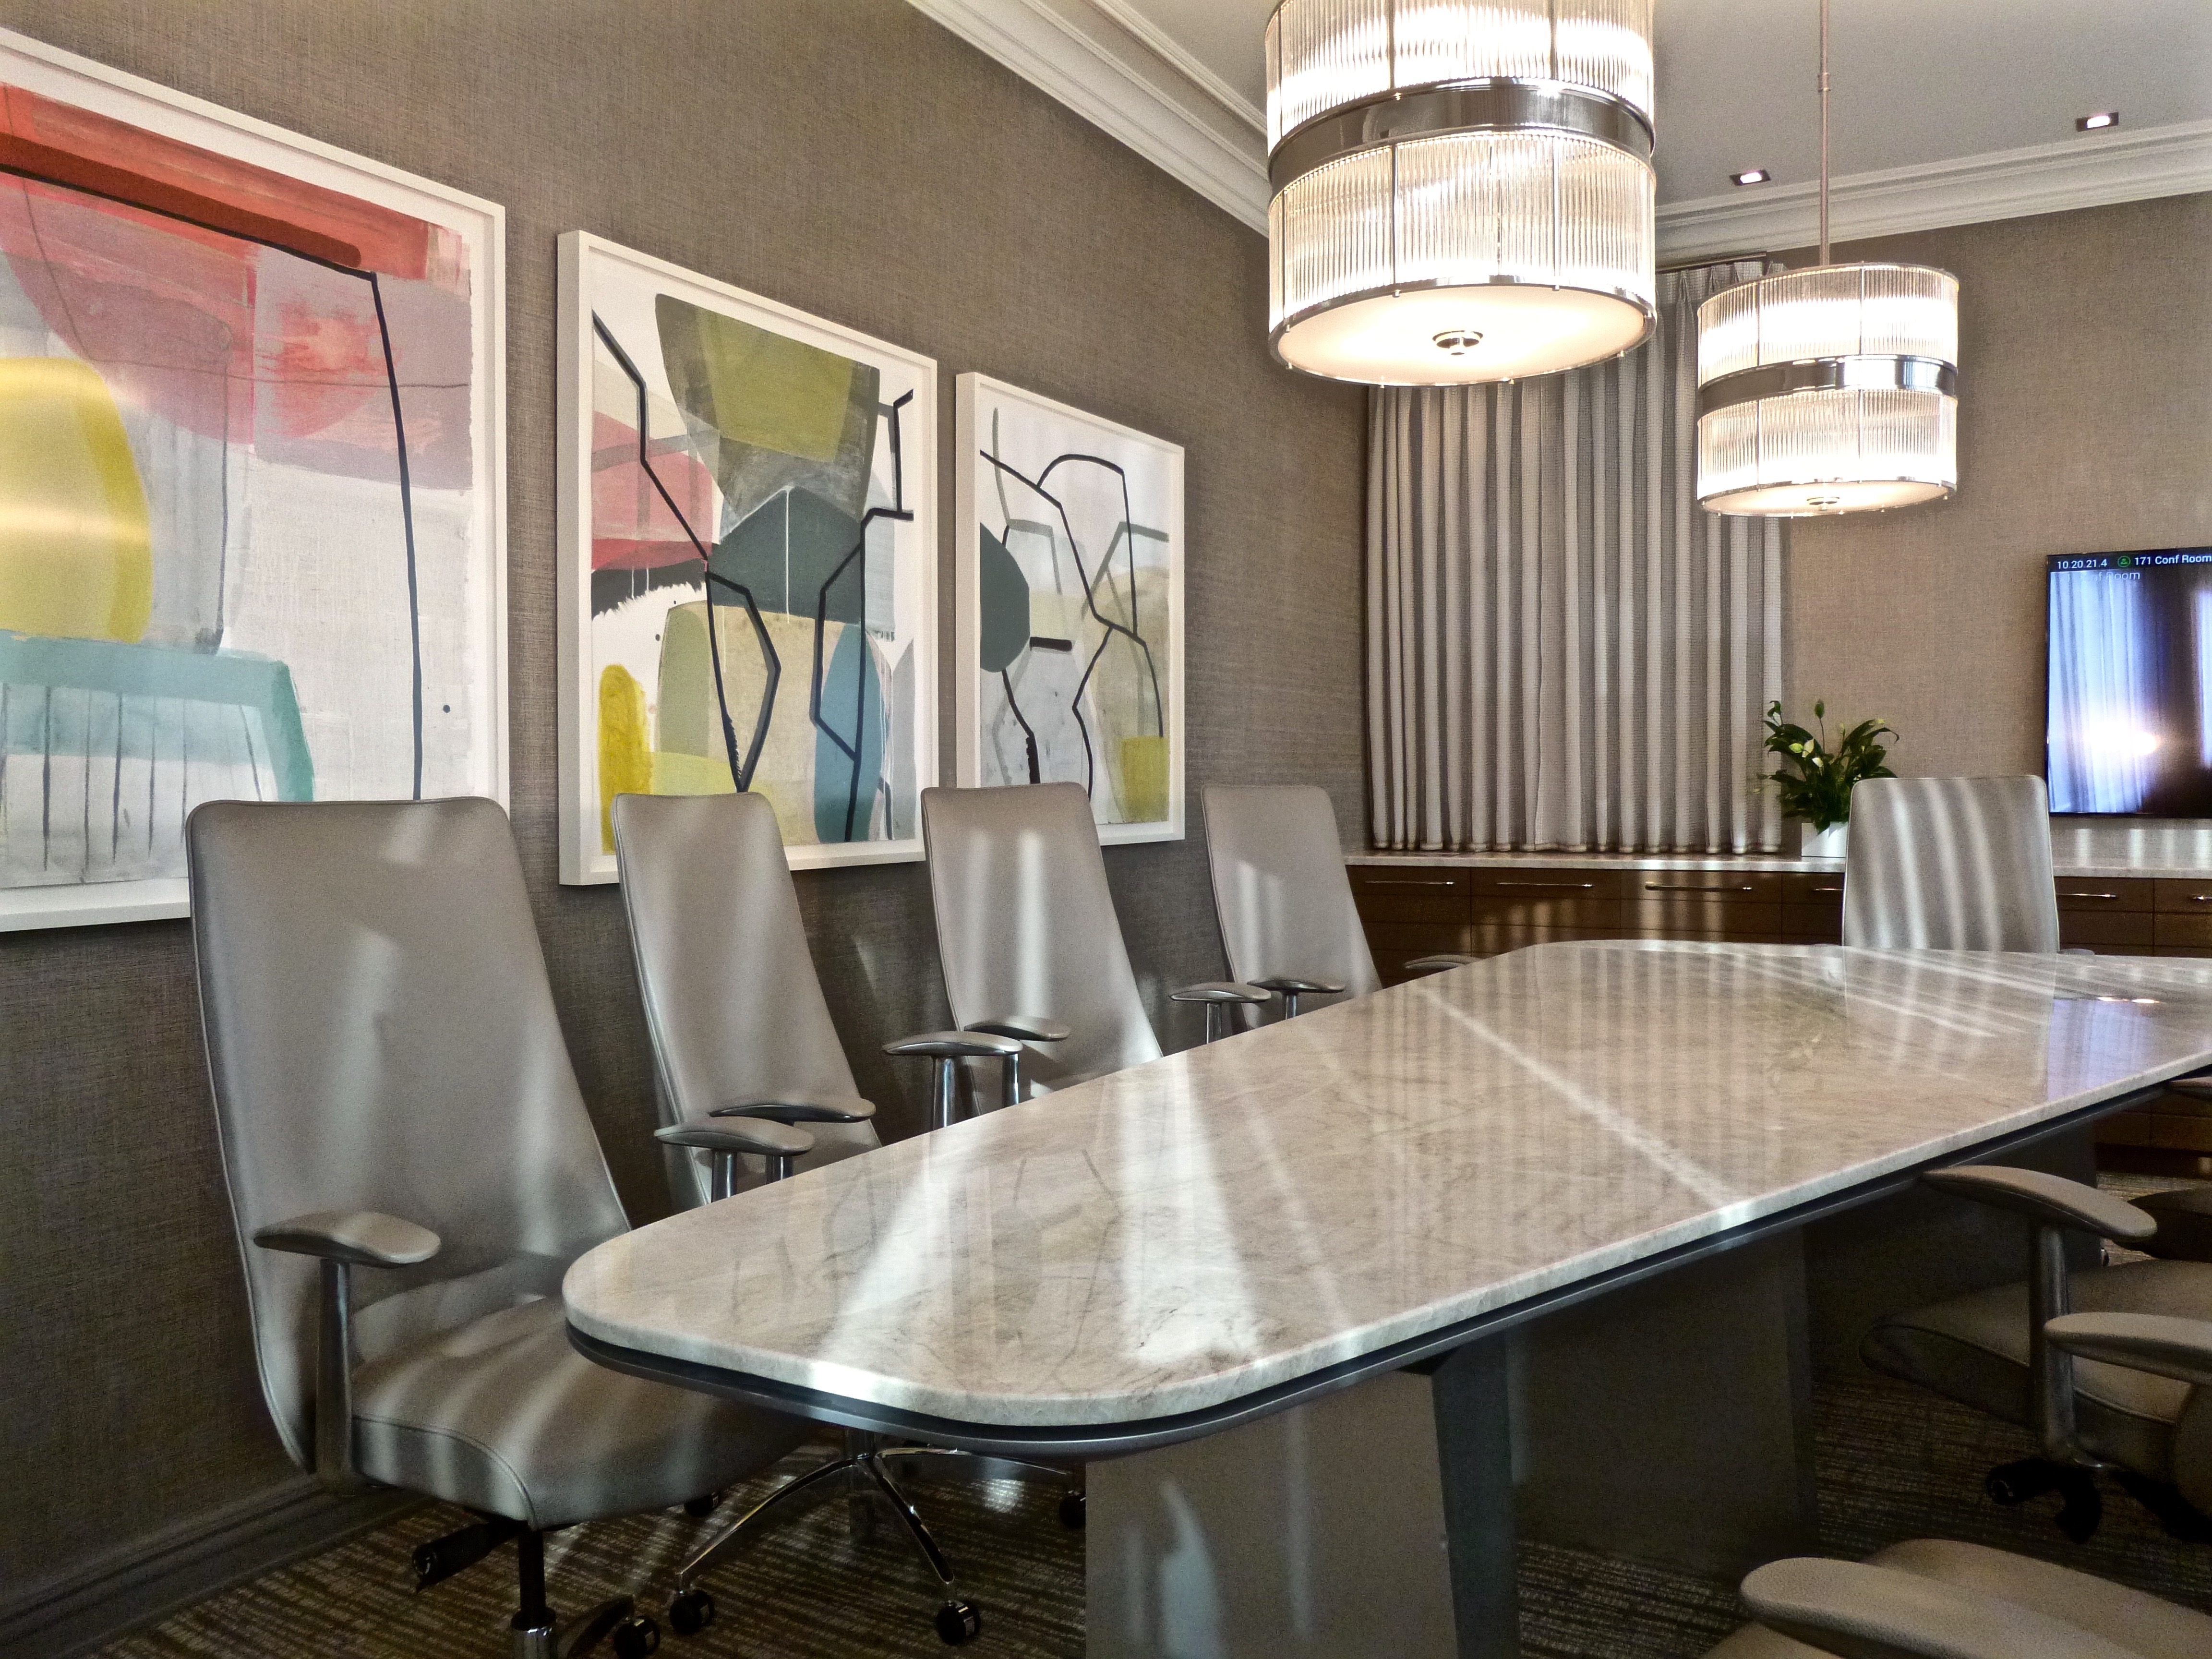 three paintings on paper by artist ky anderson are mounted on the long wall facing the windows modern crystal chandeliers light the conference table